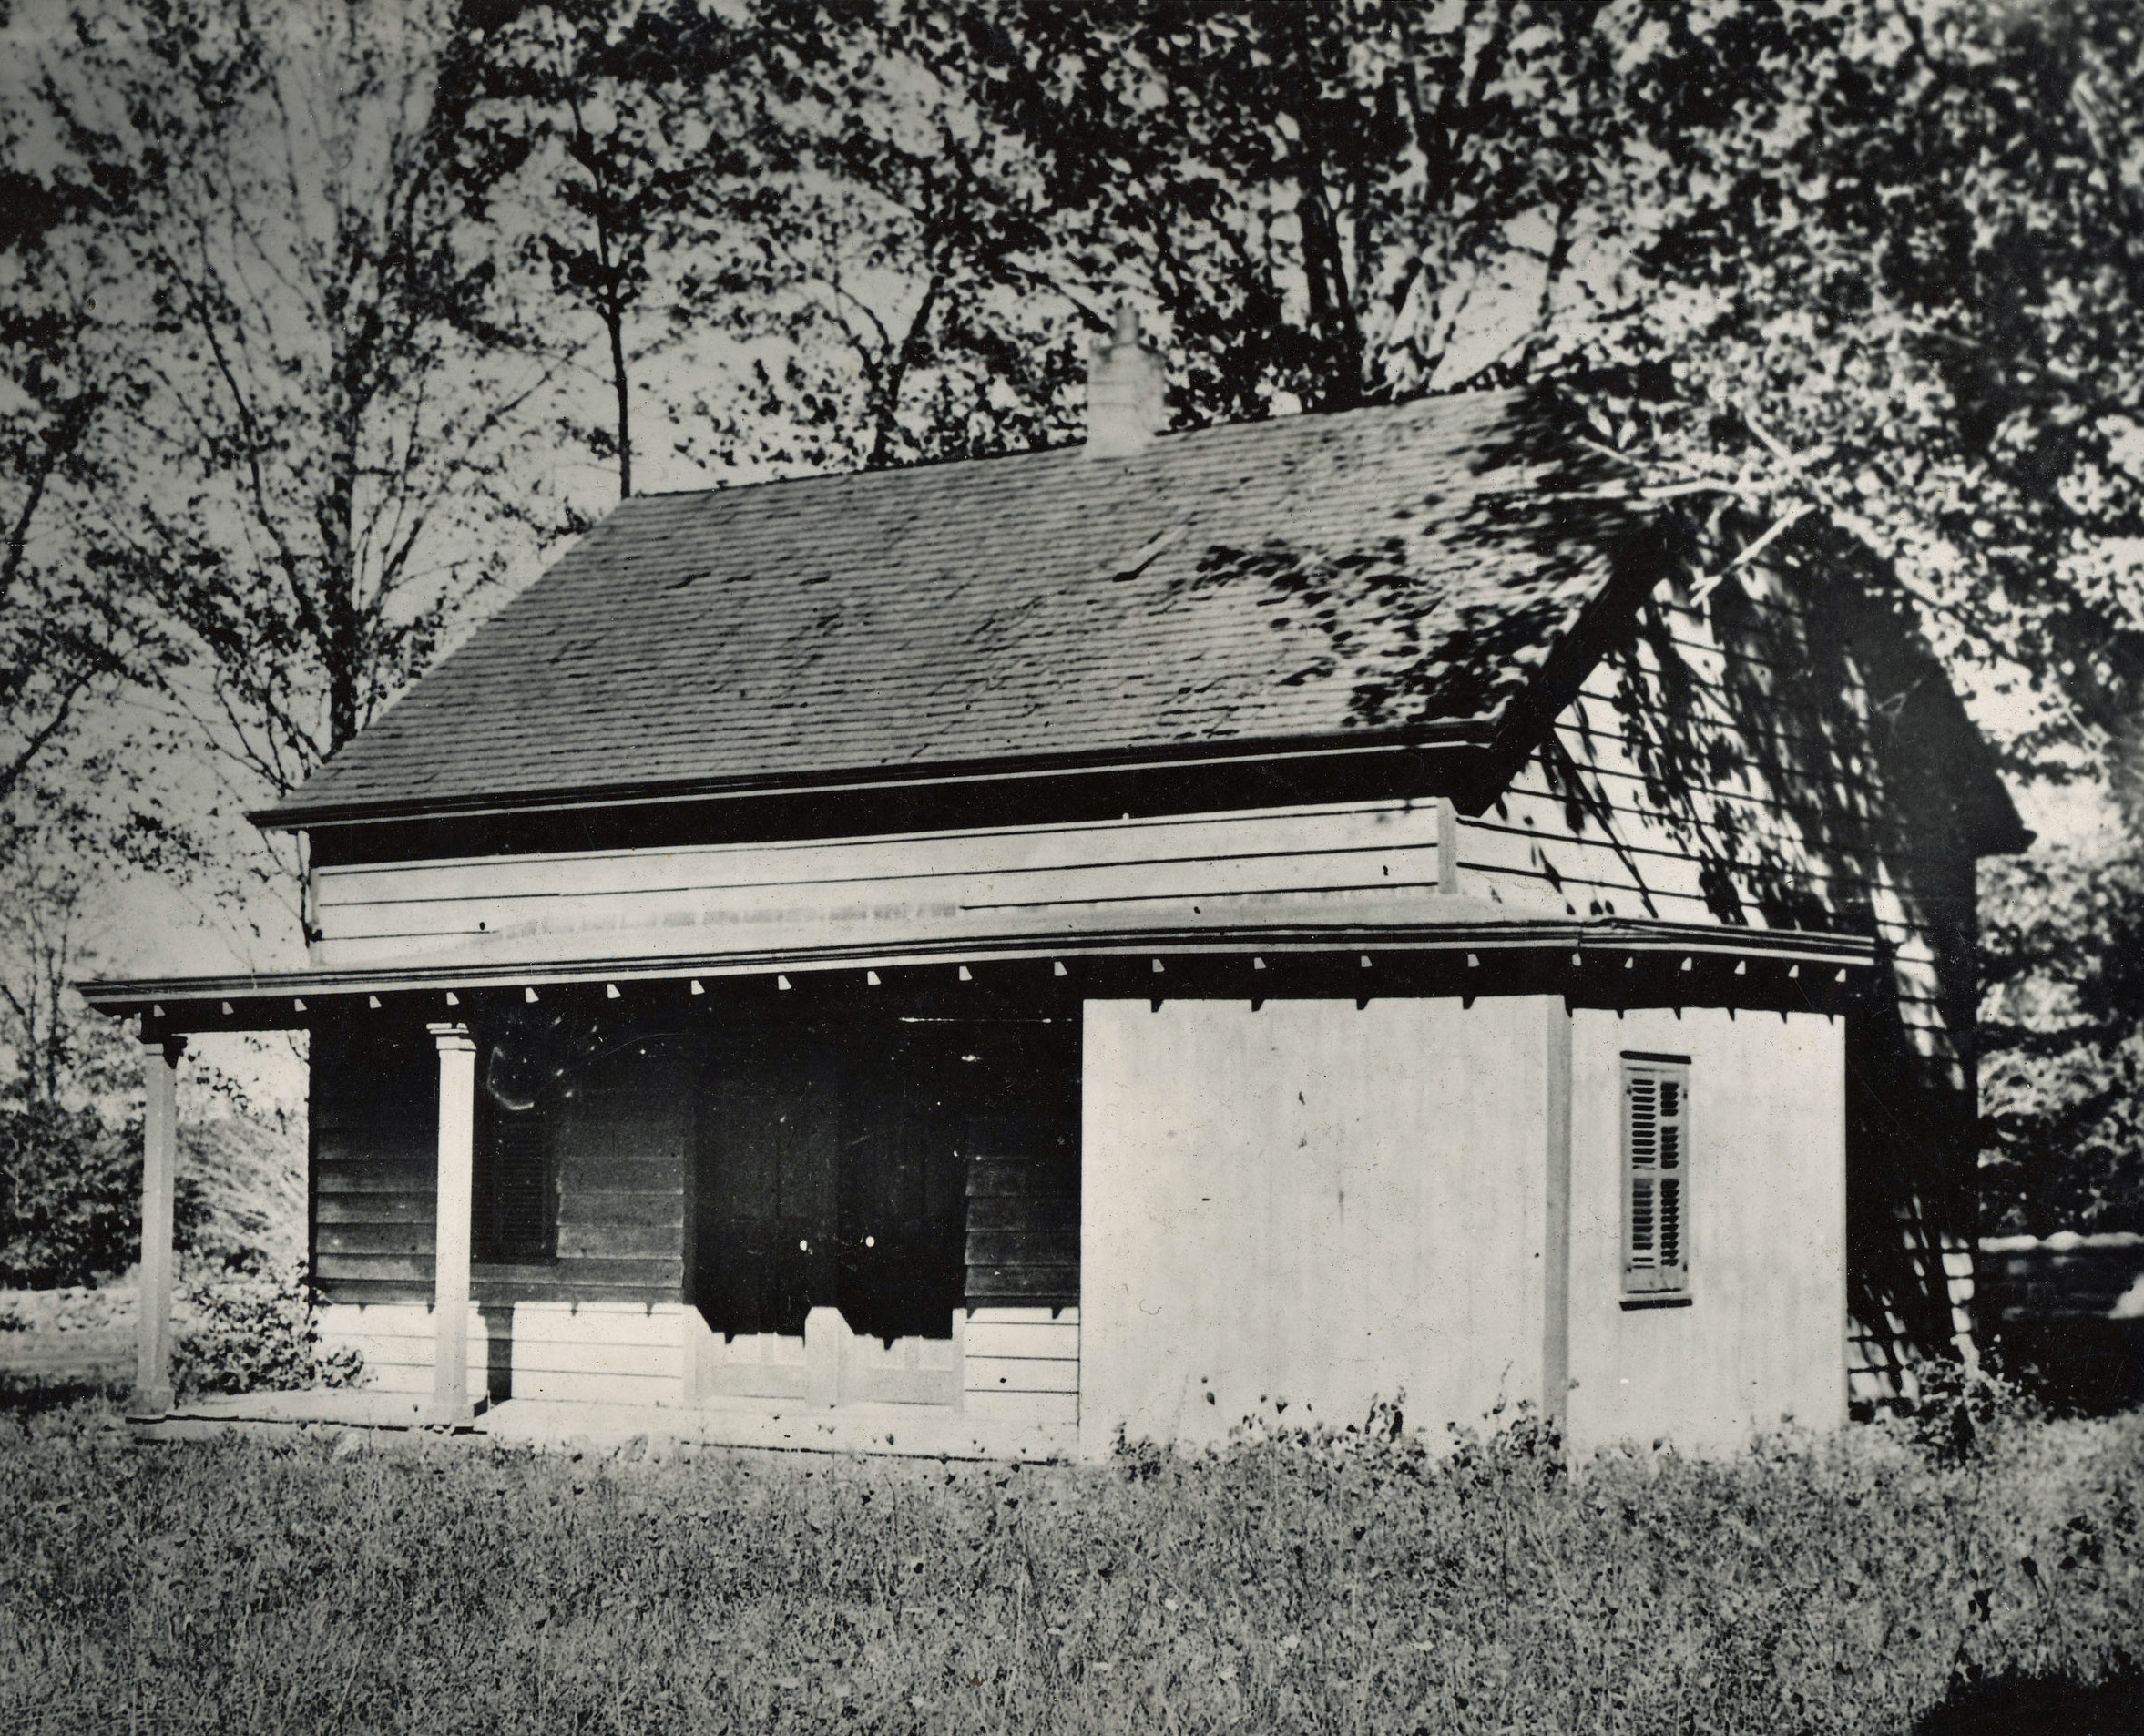 The original Quaker Meeting House was on Weaver Street before it was moved to Post Road by the Society. (1963 photo)